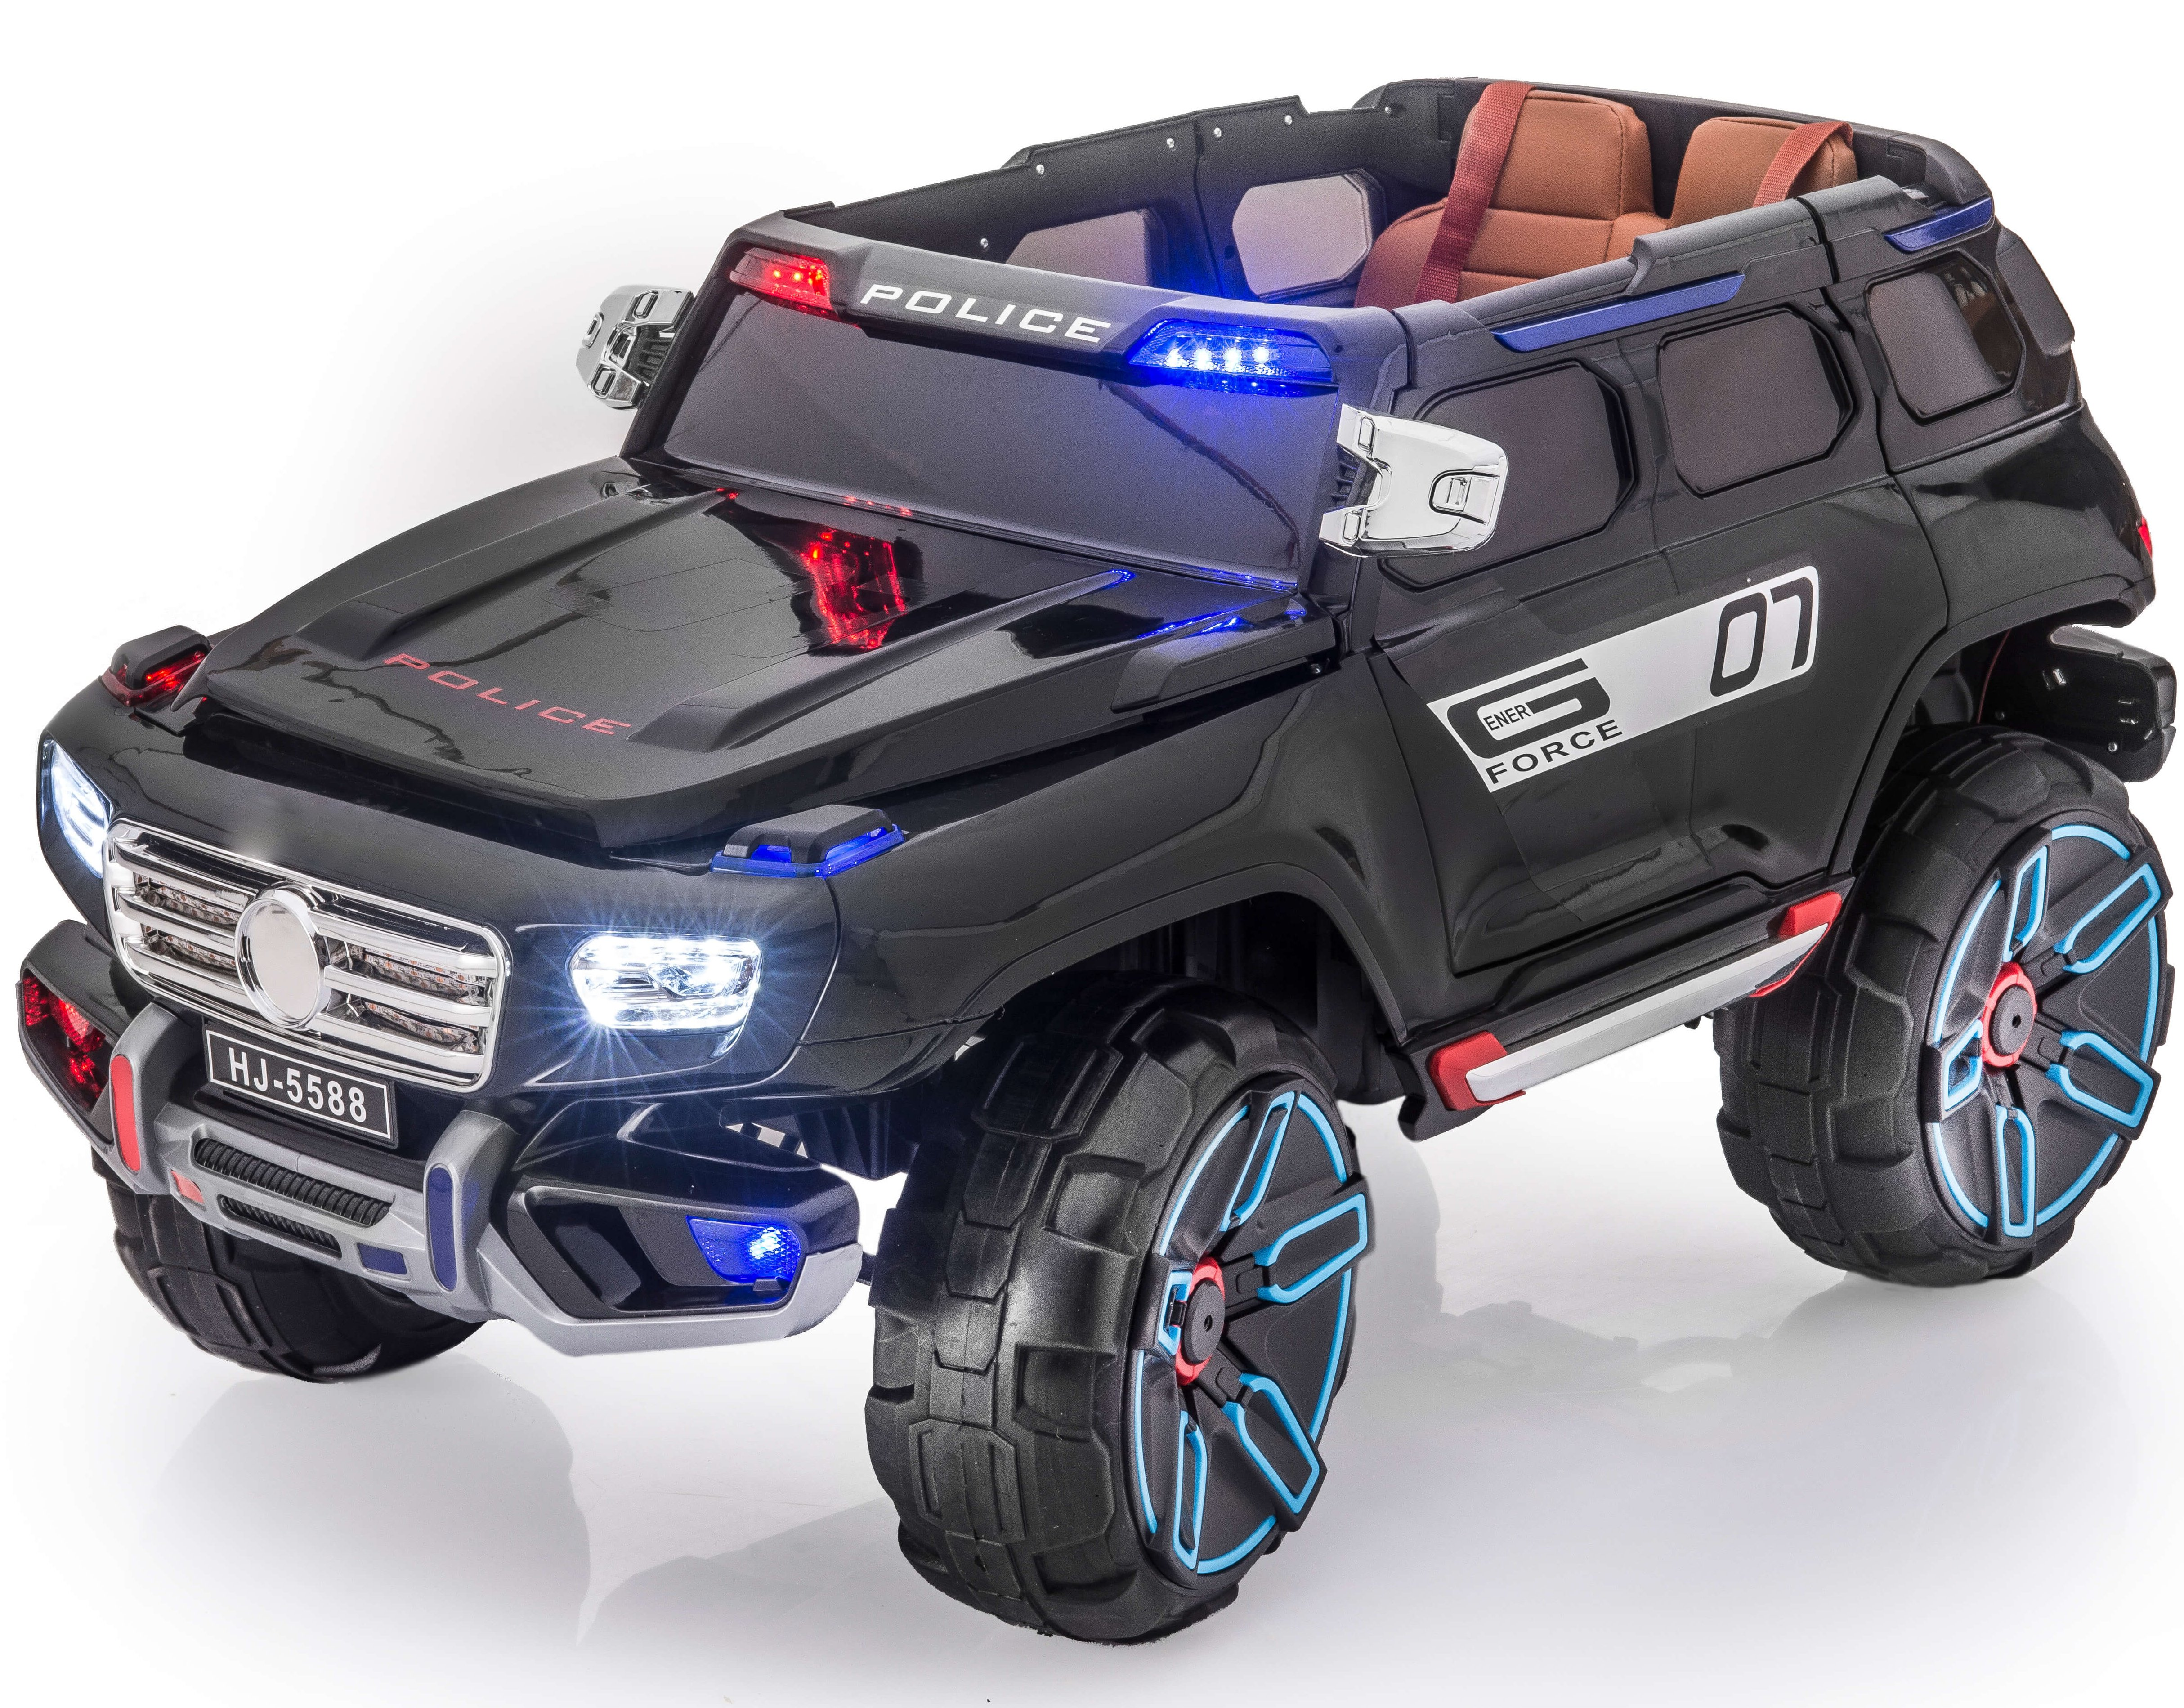 Premium Police Edition 12V Battery Powered Ride On Electric Toy Car For Kids Leather Seat LED Lights MP3 RC... by KidsVip Exclusive Toys for Kids and Toddlers